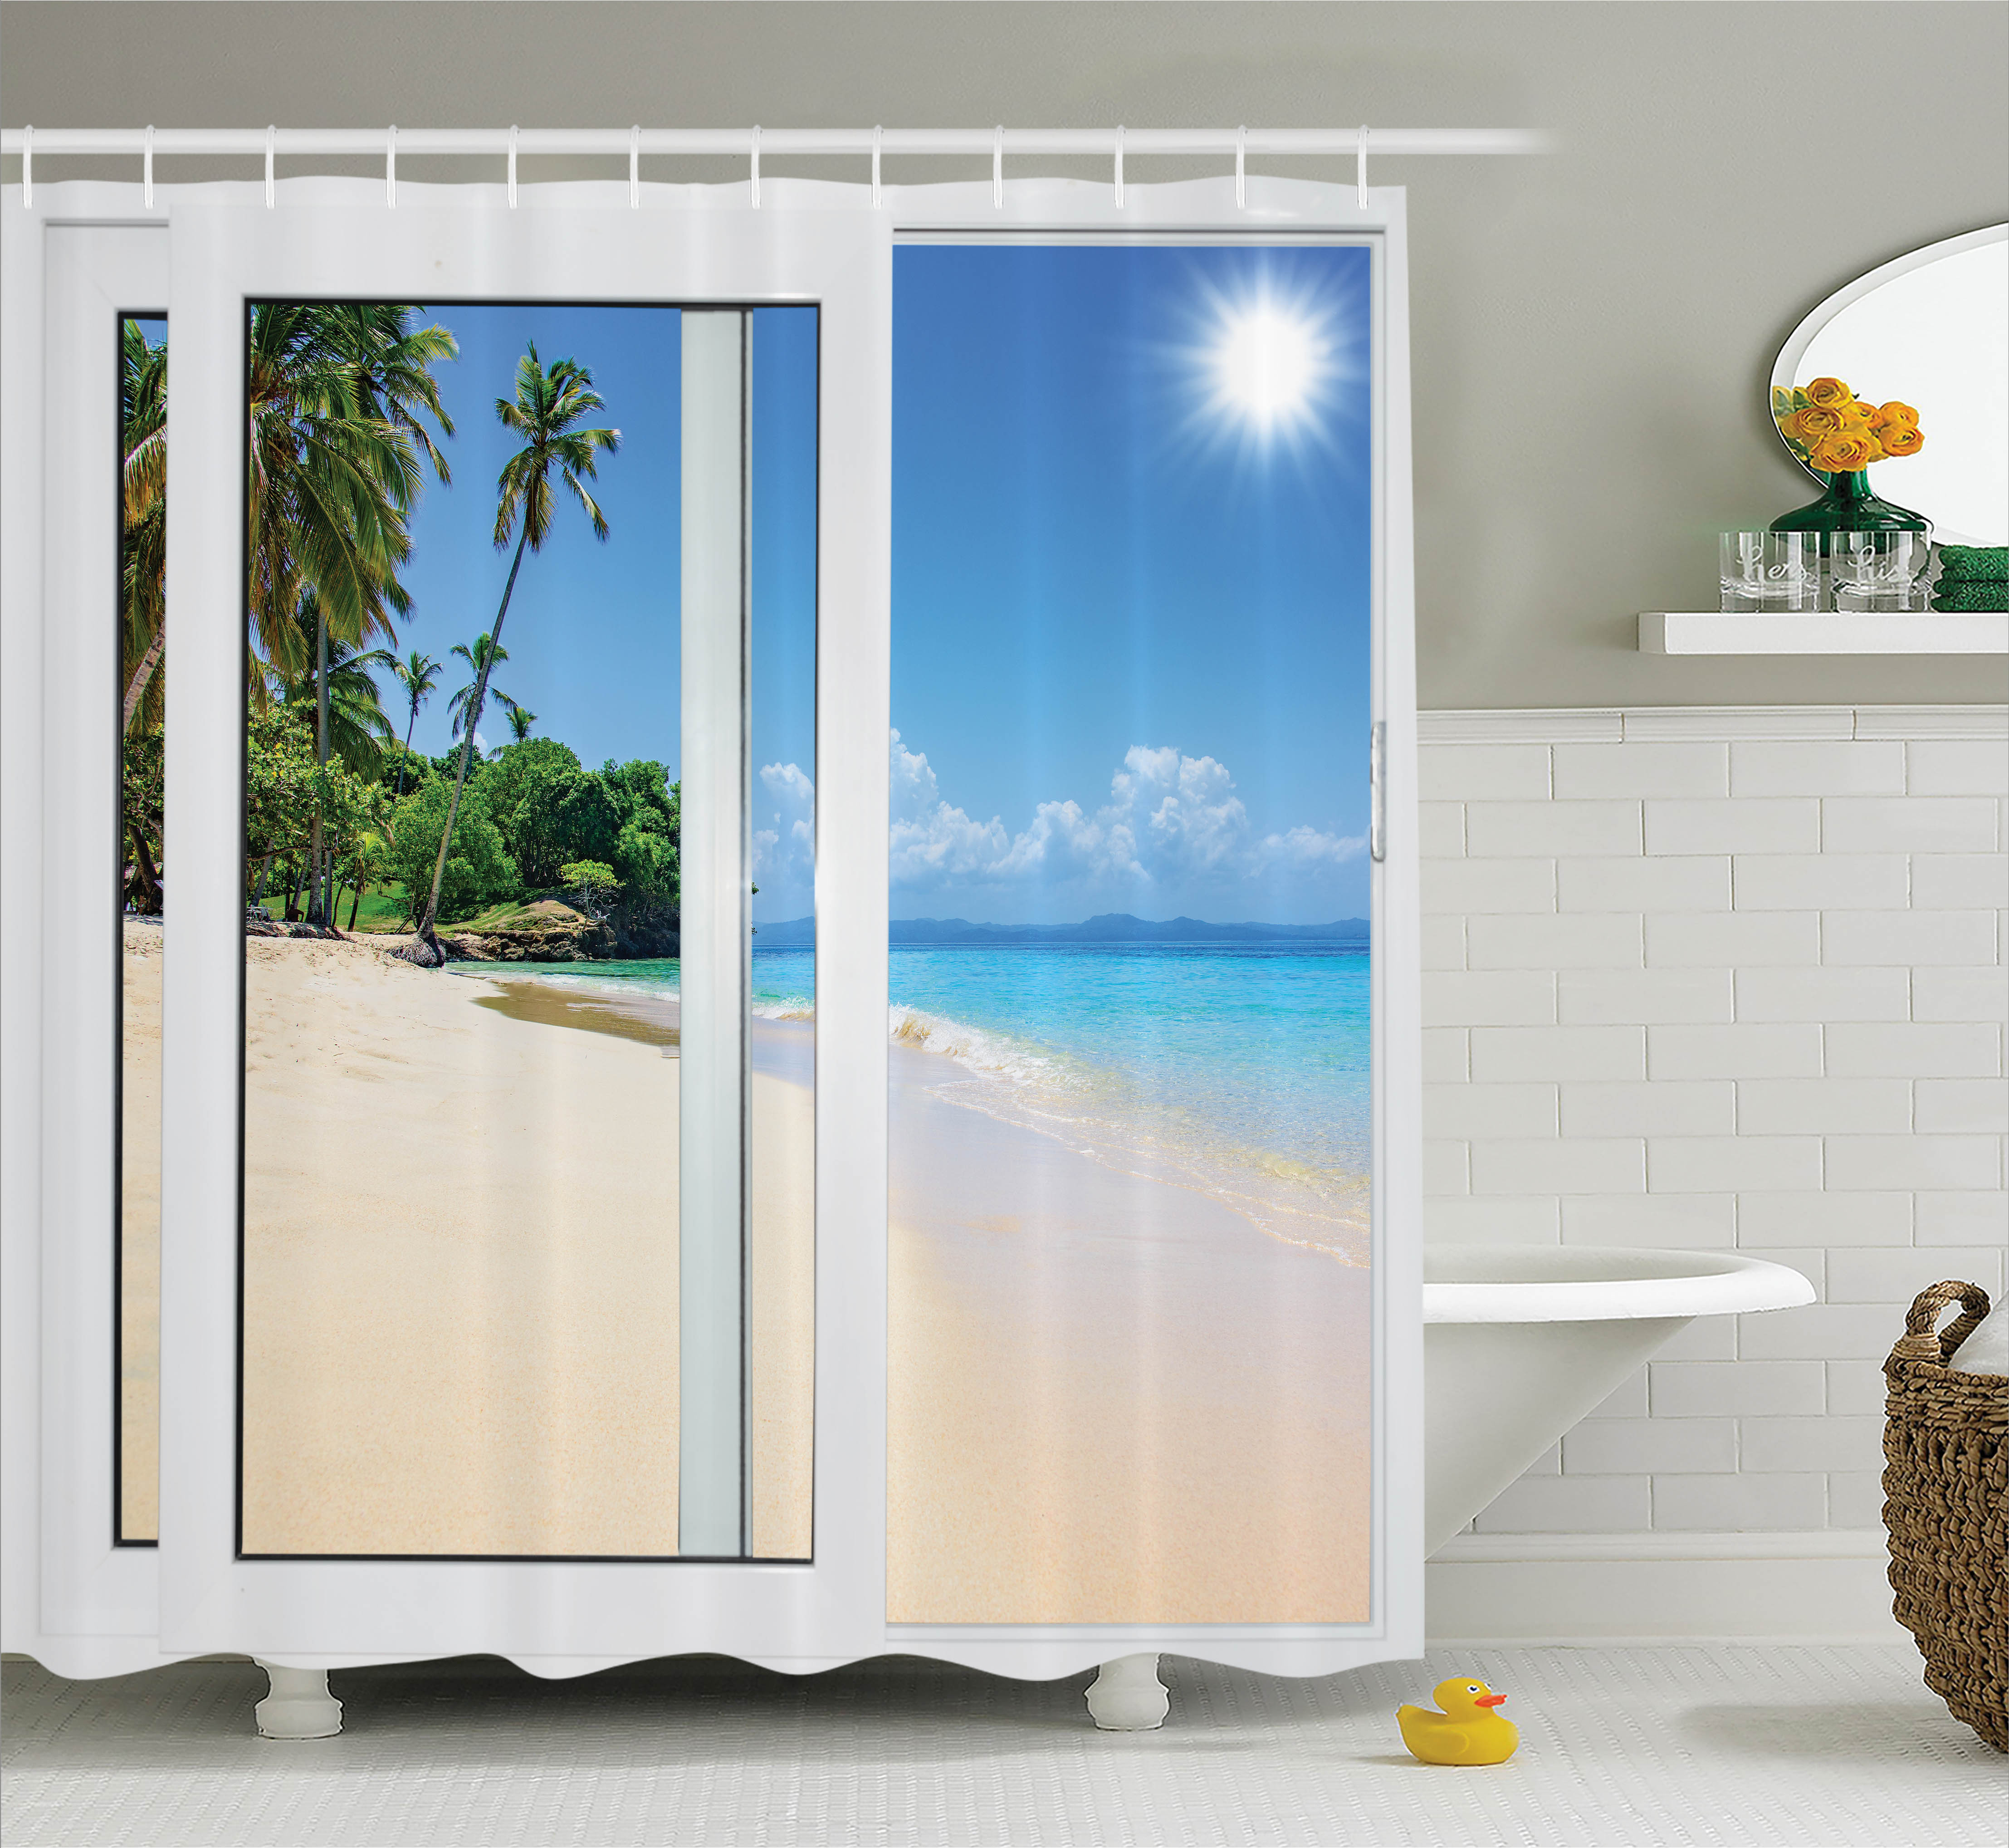 View from the Window of Tropical Island Beach Water Art Decor Shower Curtain Set